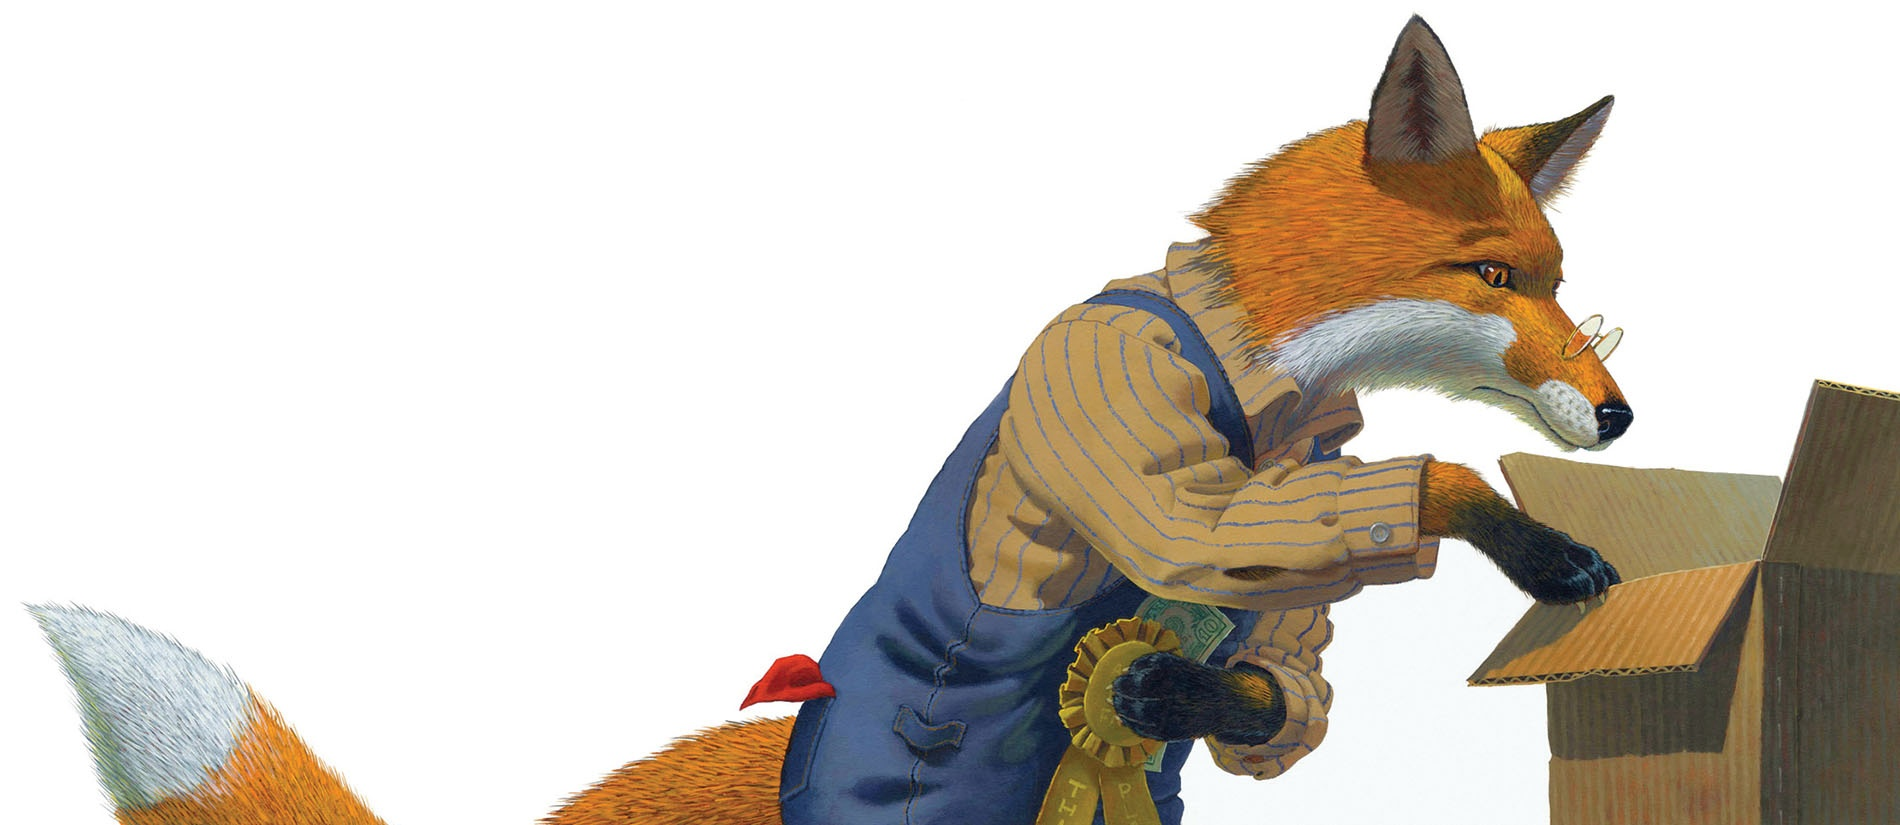 Illustration of a fox looking into a box by Brian Lies